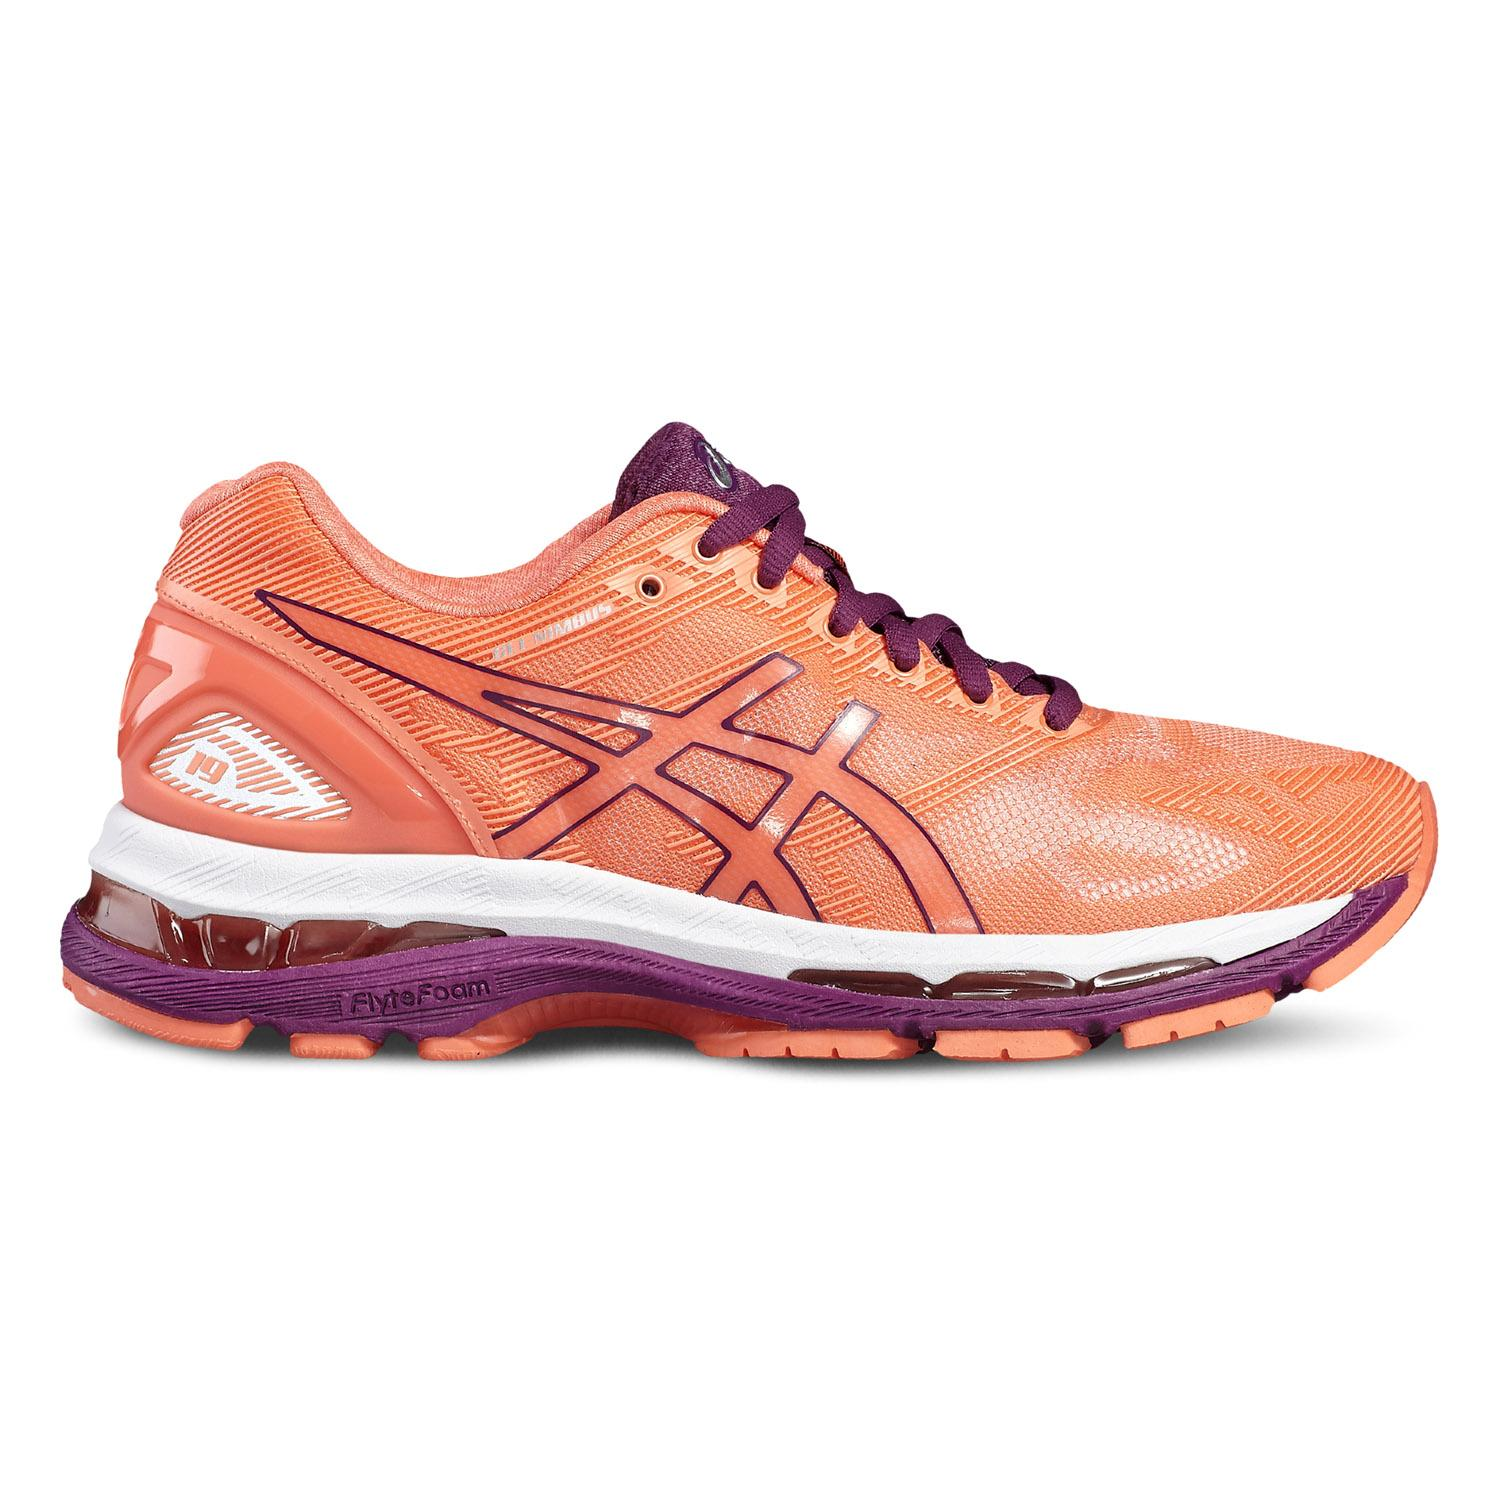 Asics Shoes Gel-nimbus 19  Woman